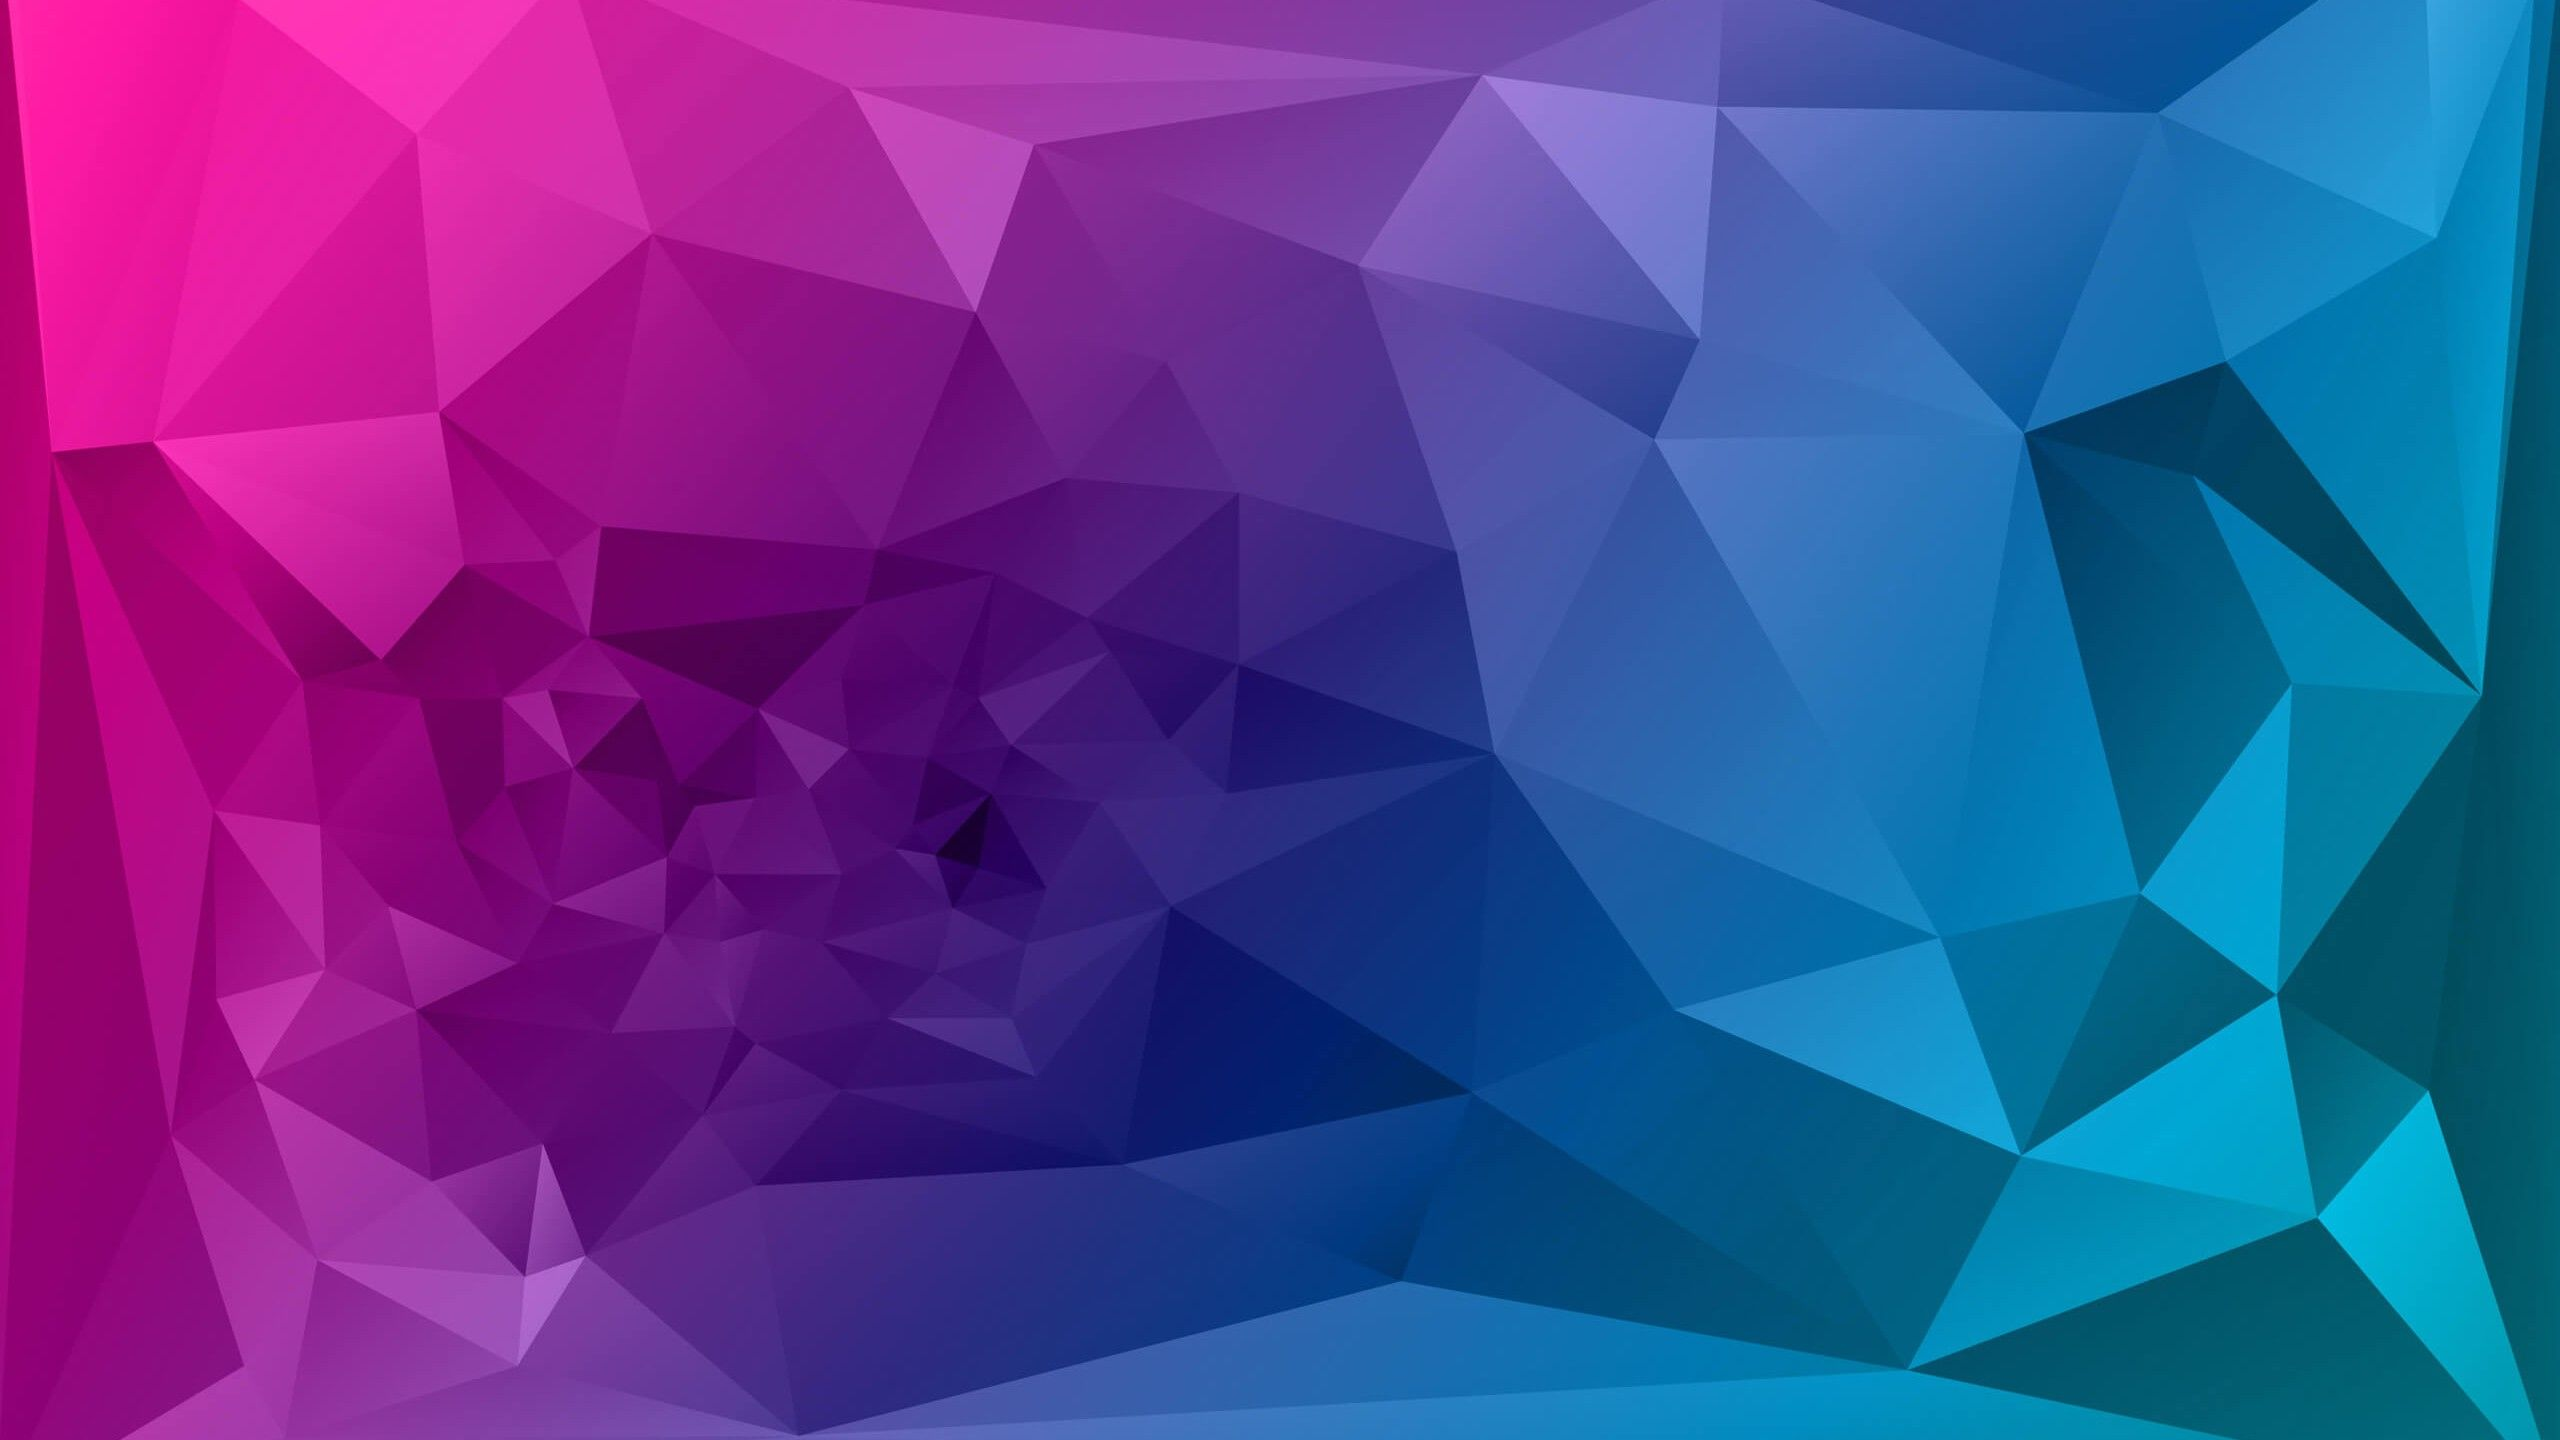 YouTube Channel Art Backgrounds Polygonal Background